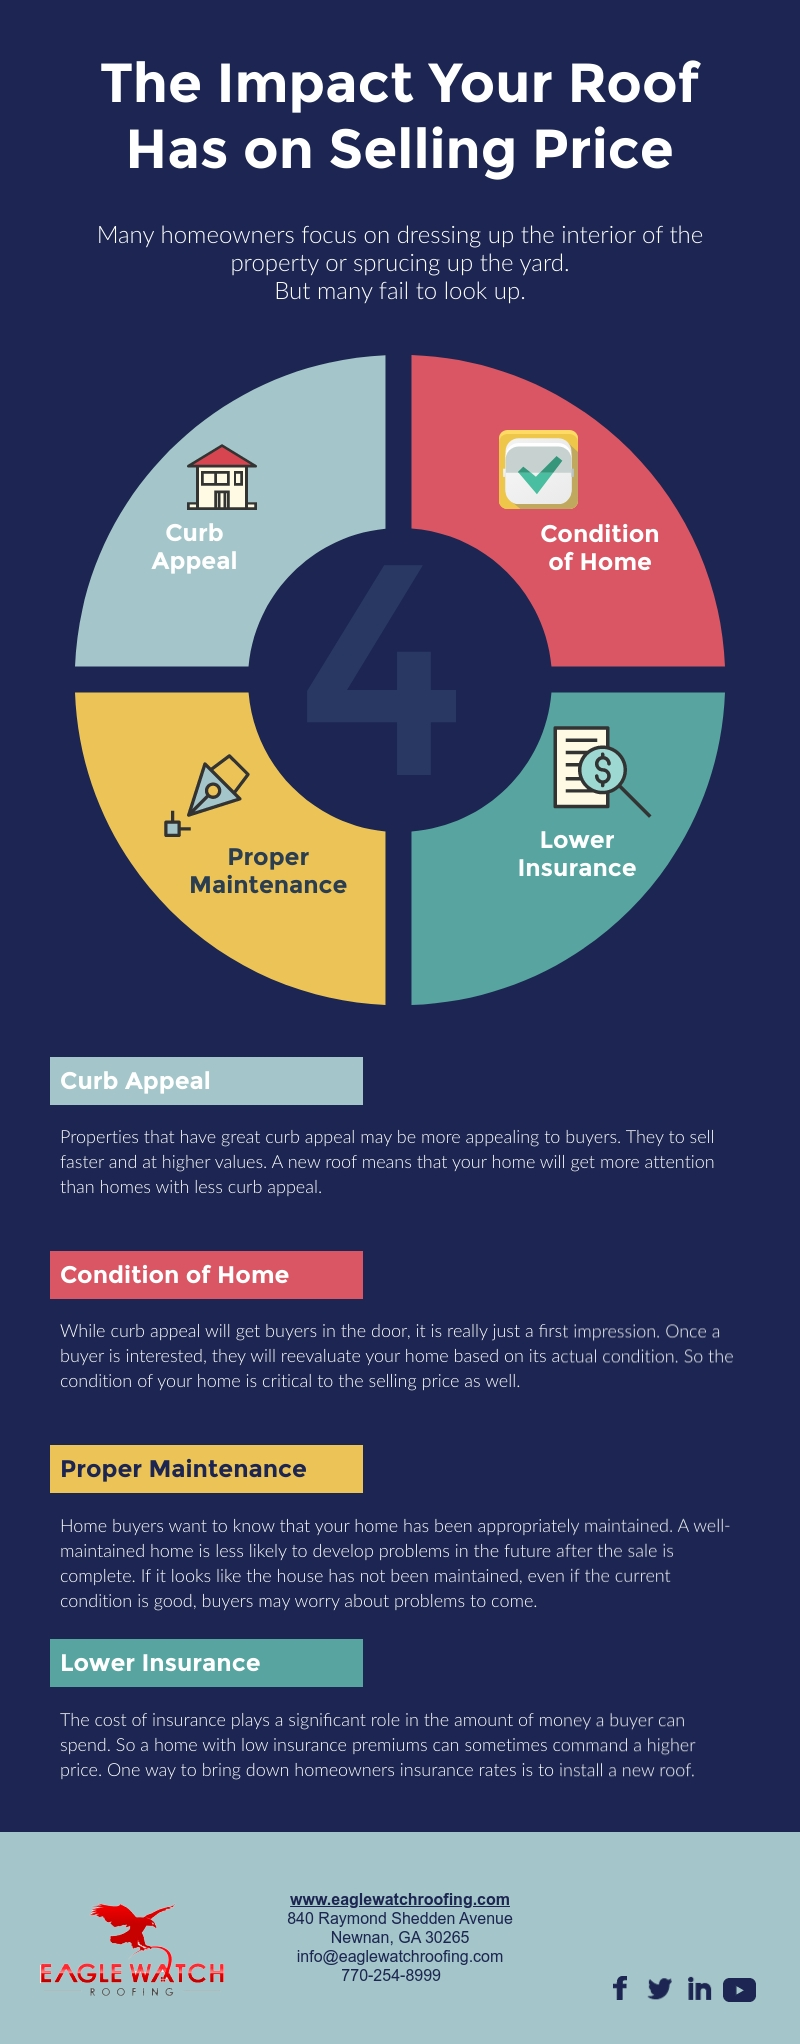 The Impact Your Roof Has on Your Selling Price [infographic]